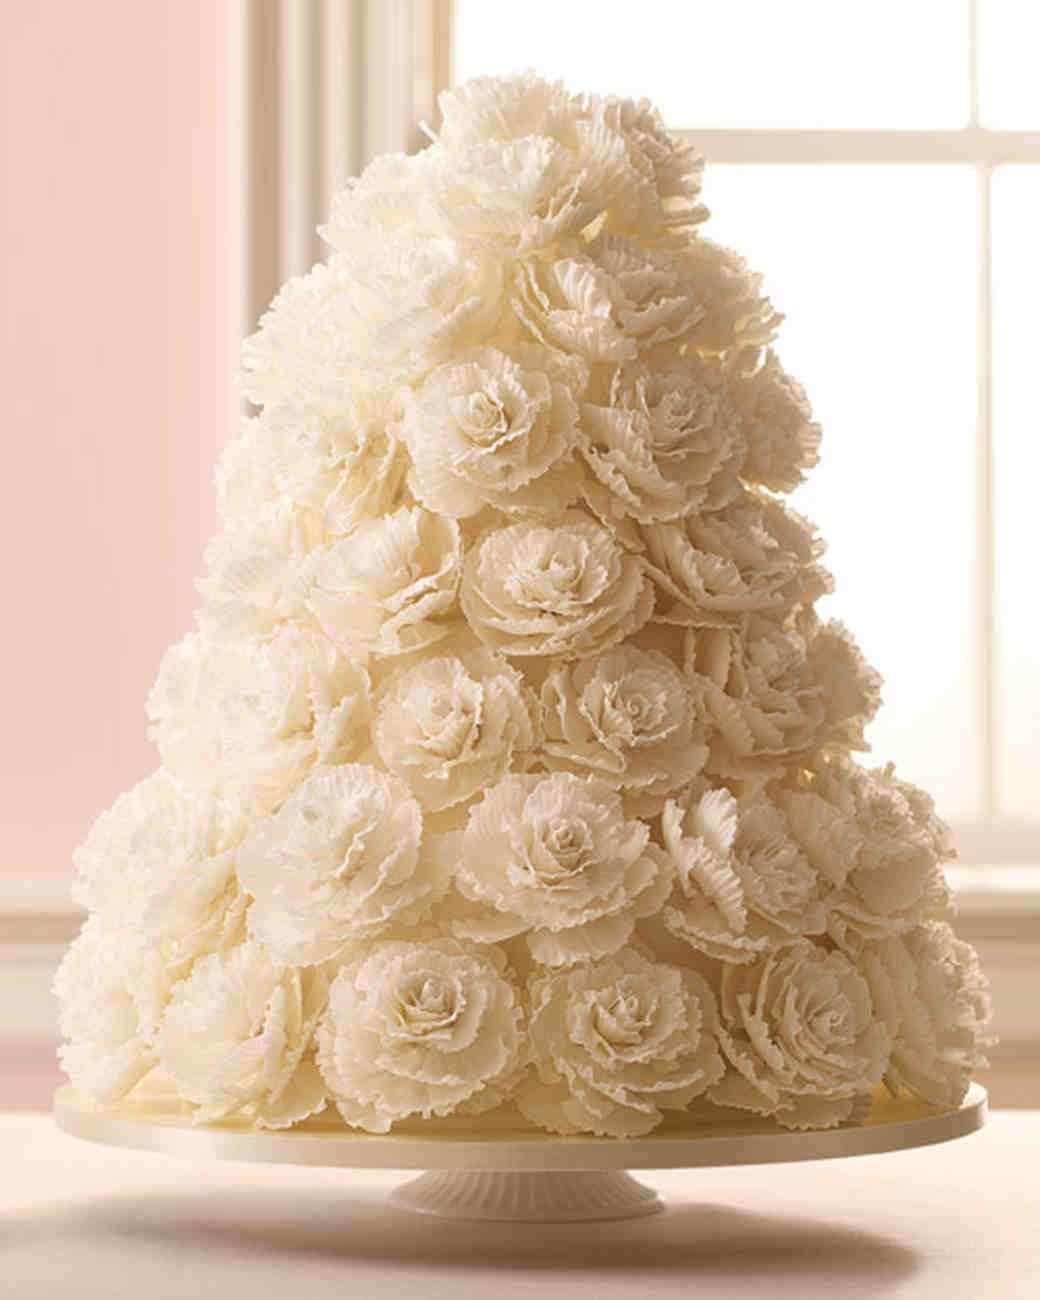 White Wedding Cake Covered in Sugar Rose Petals